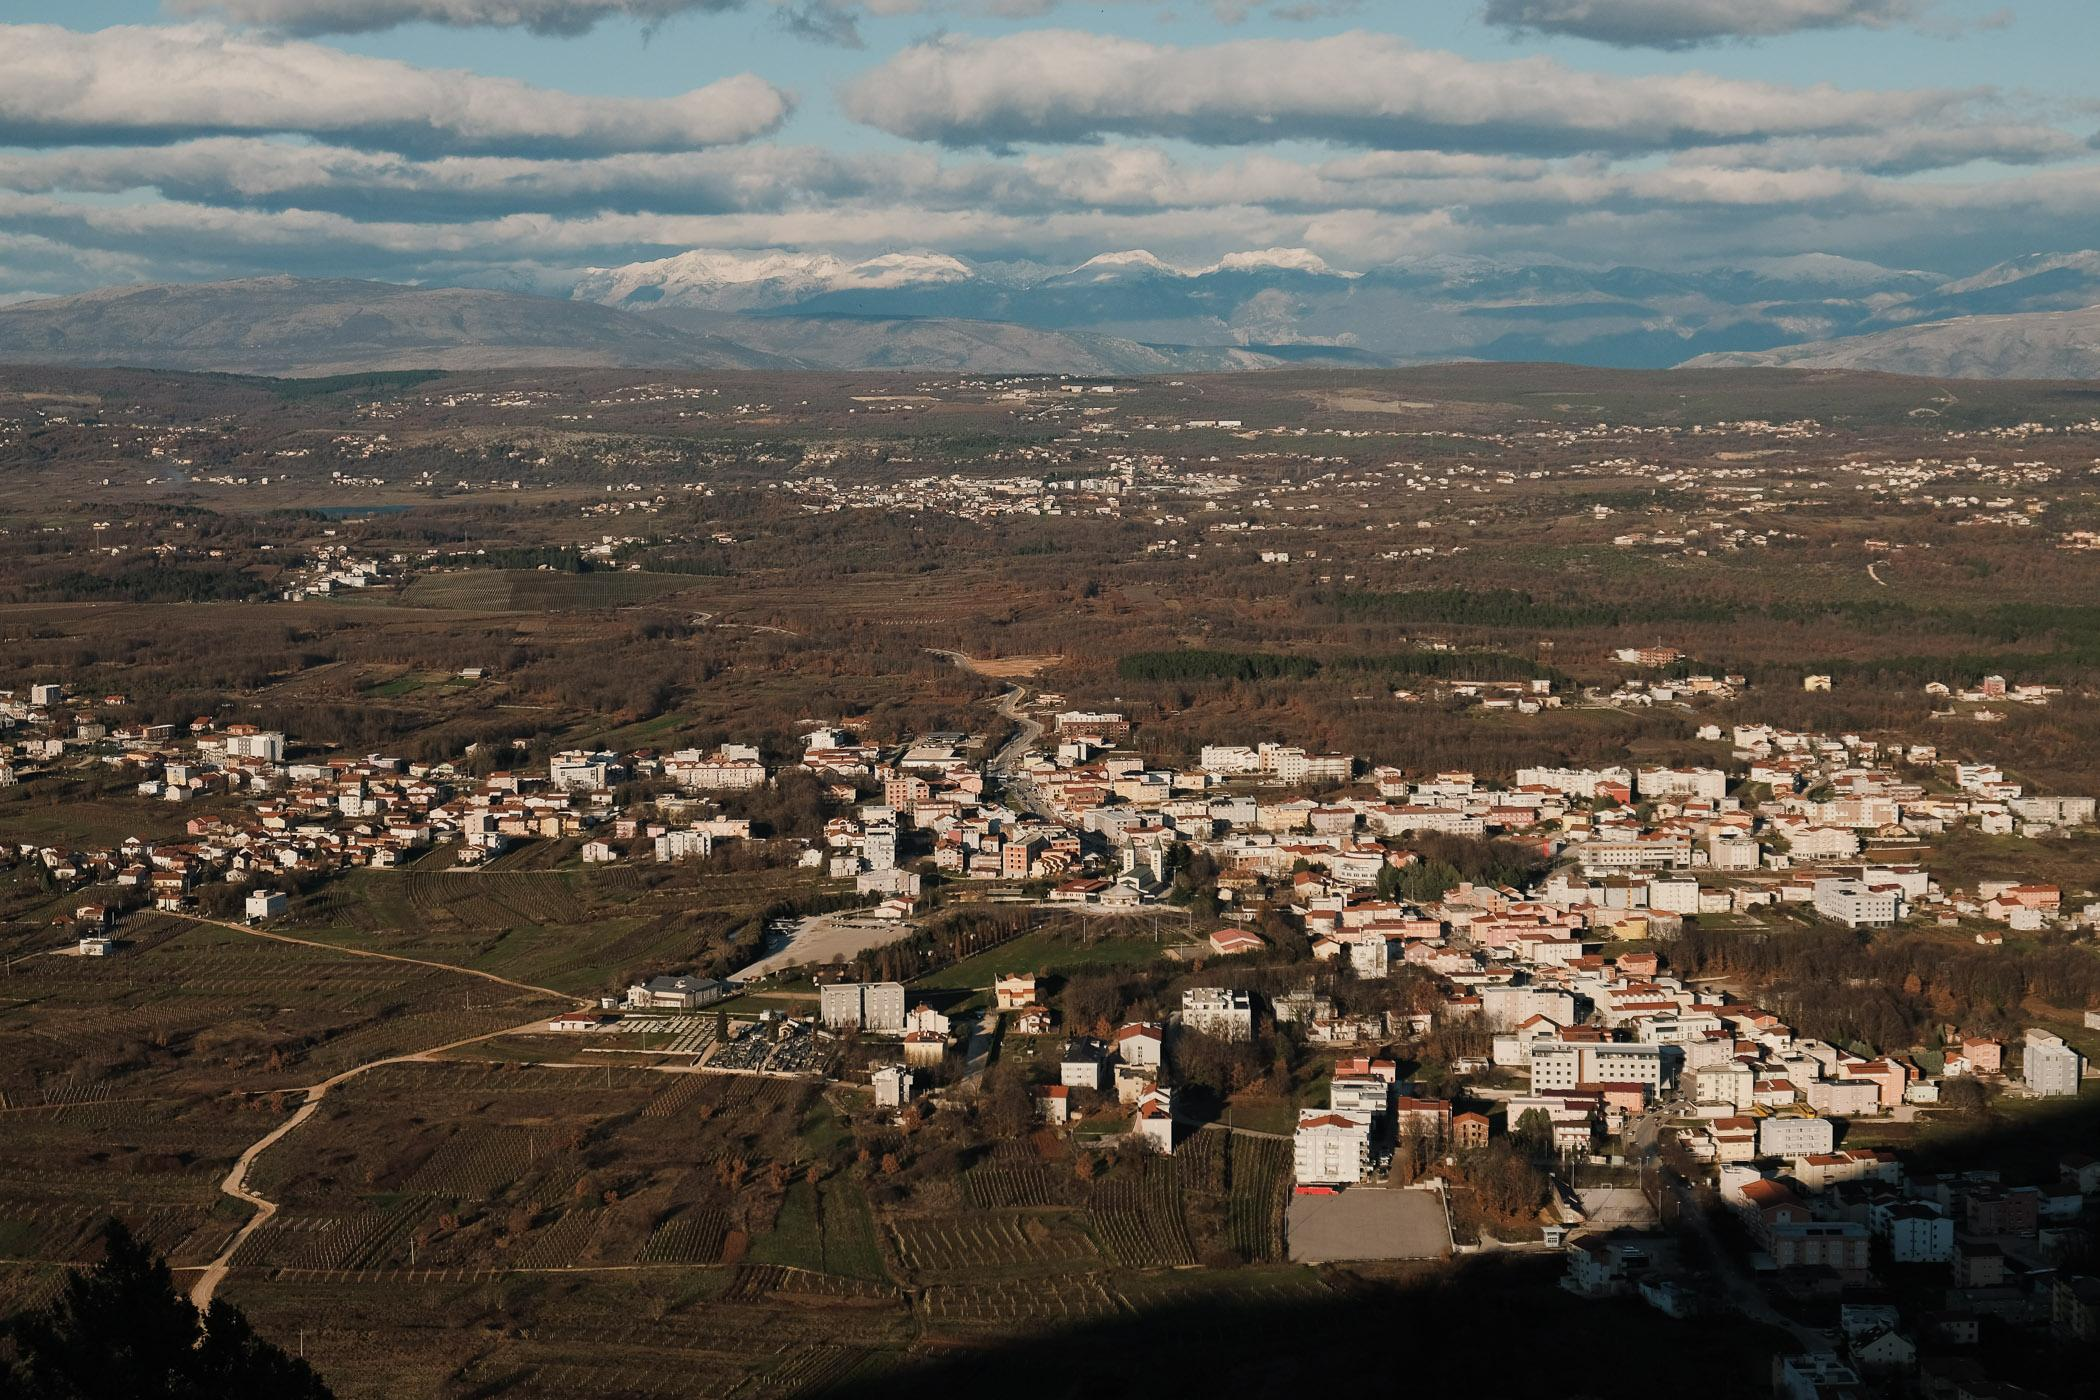 """The town of Medjugorje, whose Slavic name means """"between two mountains"""". The ethnically Croat town of around 4000 sits in the southern Herzegovina region of Bosnia, close to the border with neighbouring Croatia. The once quiet, rural town has taken on international fame since 1981, when six local teenagers allege to have been visited by an apparition of the Virgin Mary on a nearby hill."""